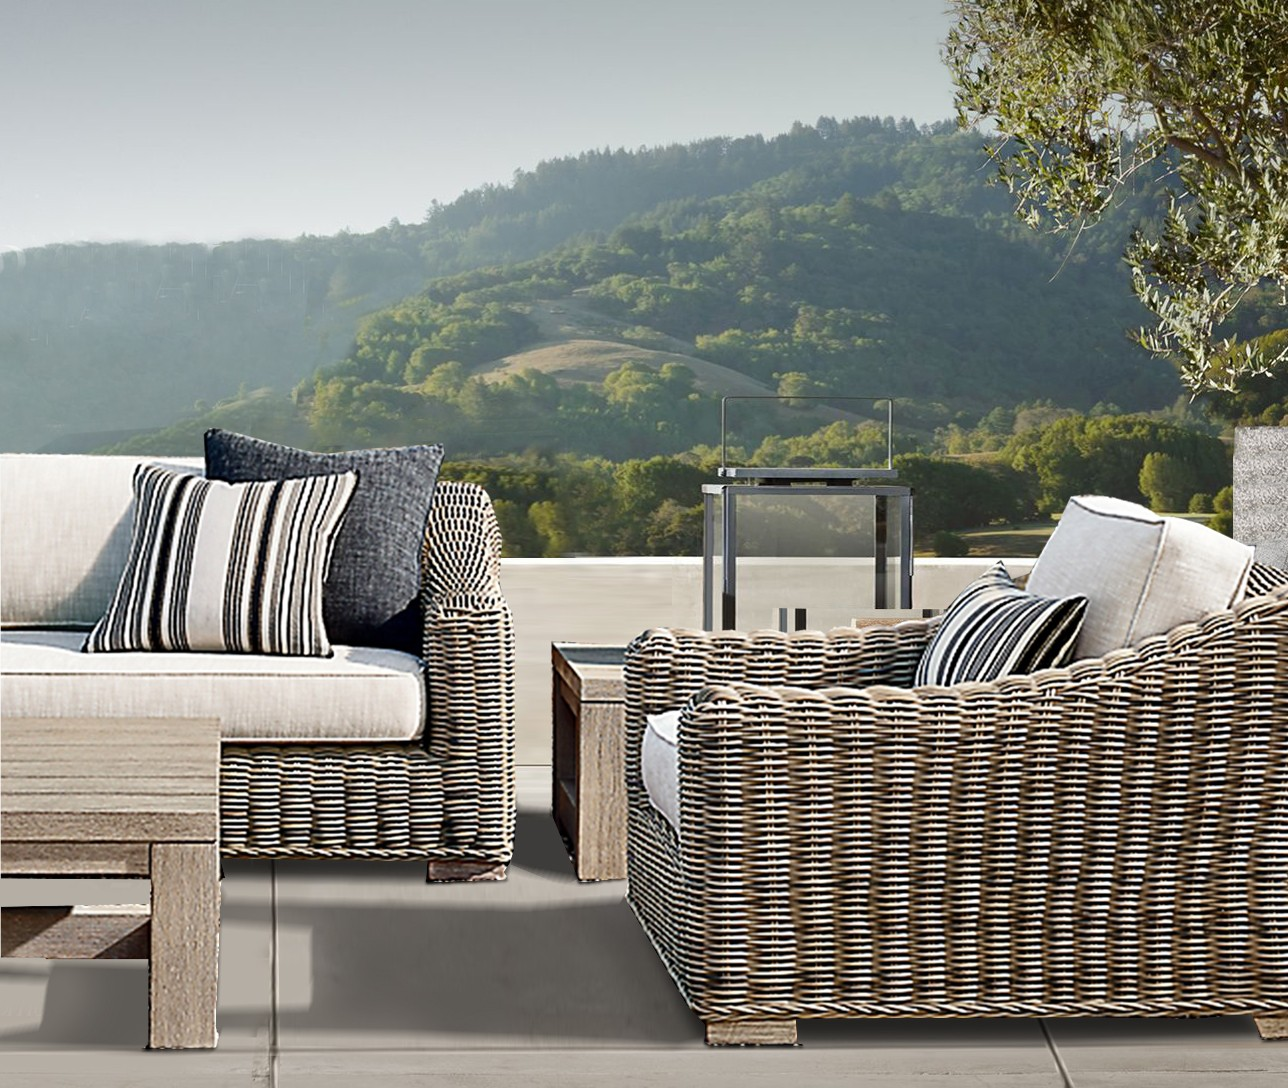 Barcelona Luxury Bespoke Outdoor Large Sofa | Hadley Rose on Bespoke Outdoor Living id=74927